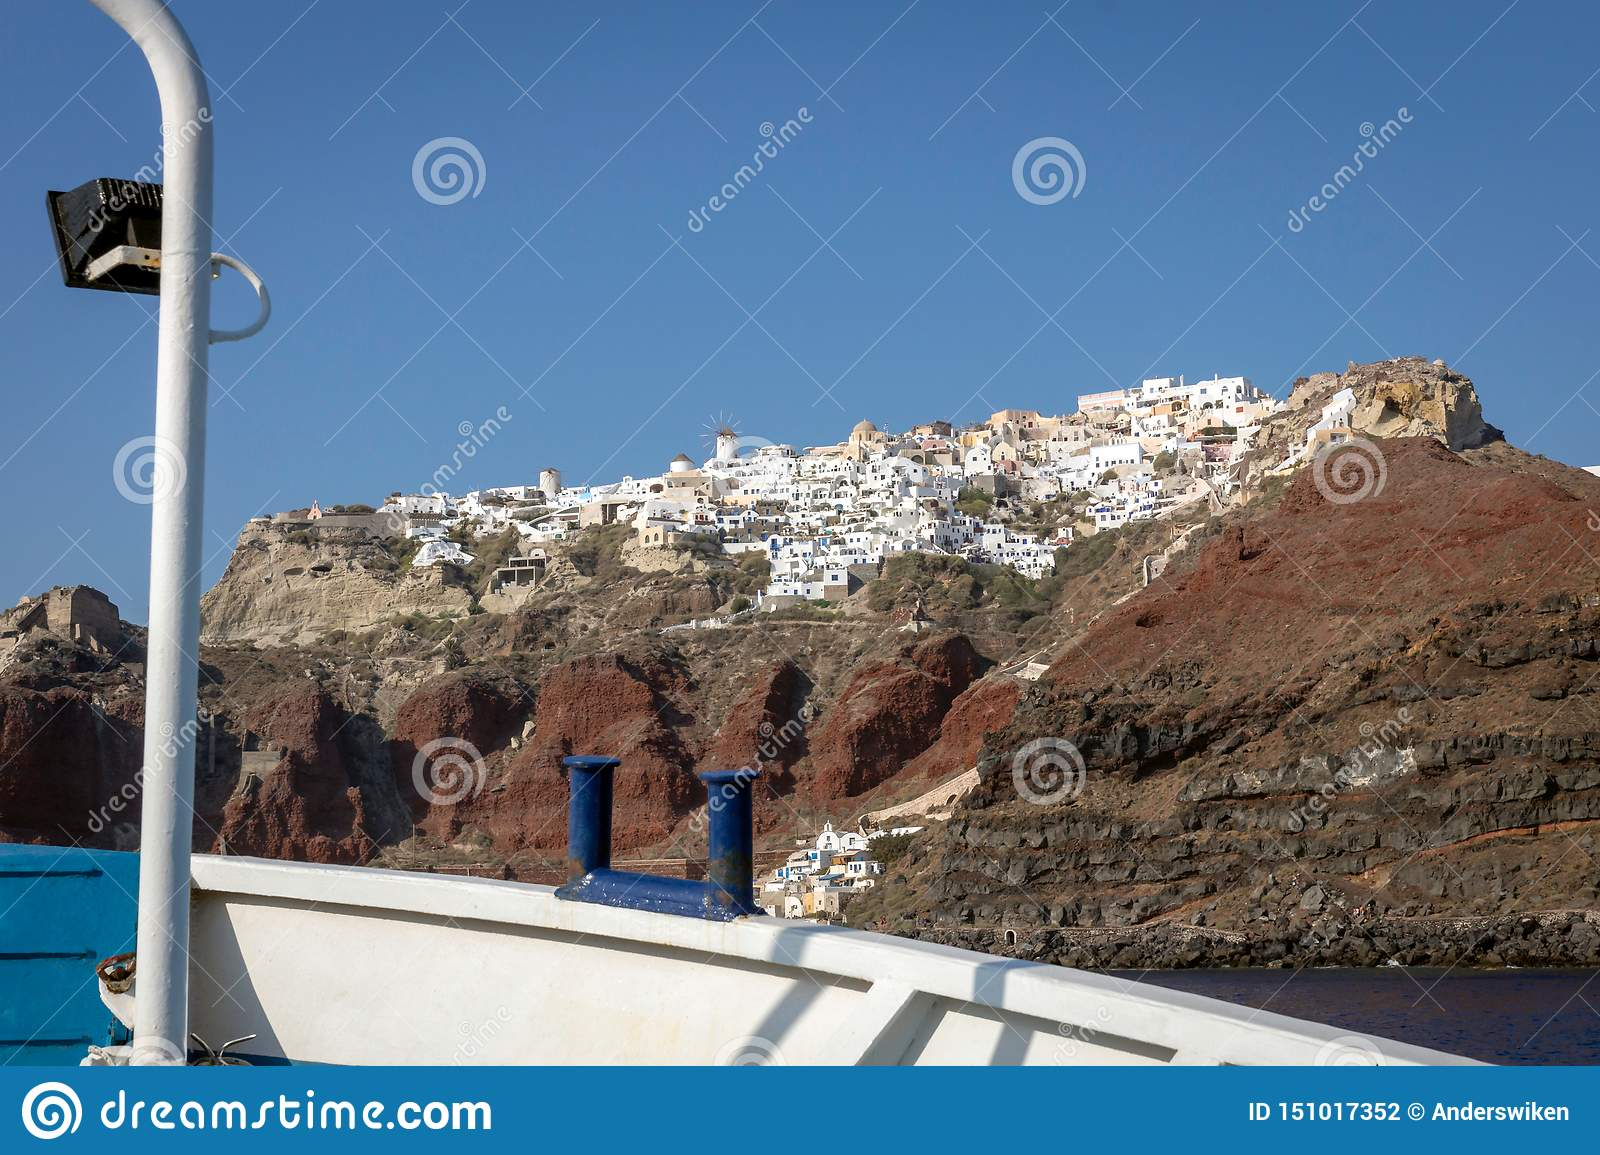 The city of Oia seen from the water in a fishing boat.